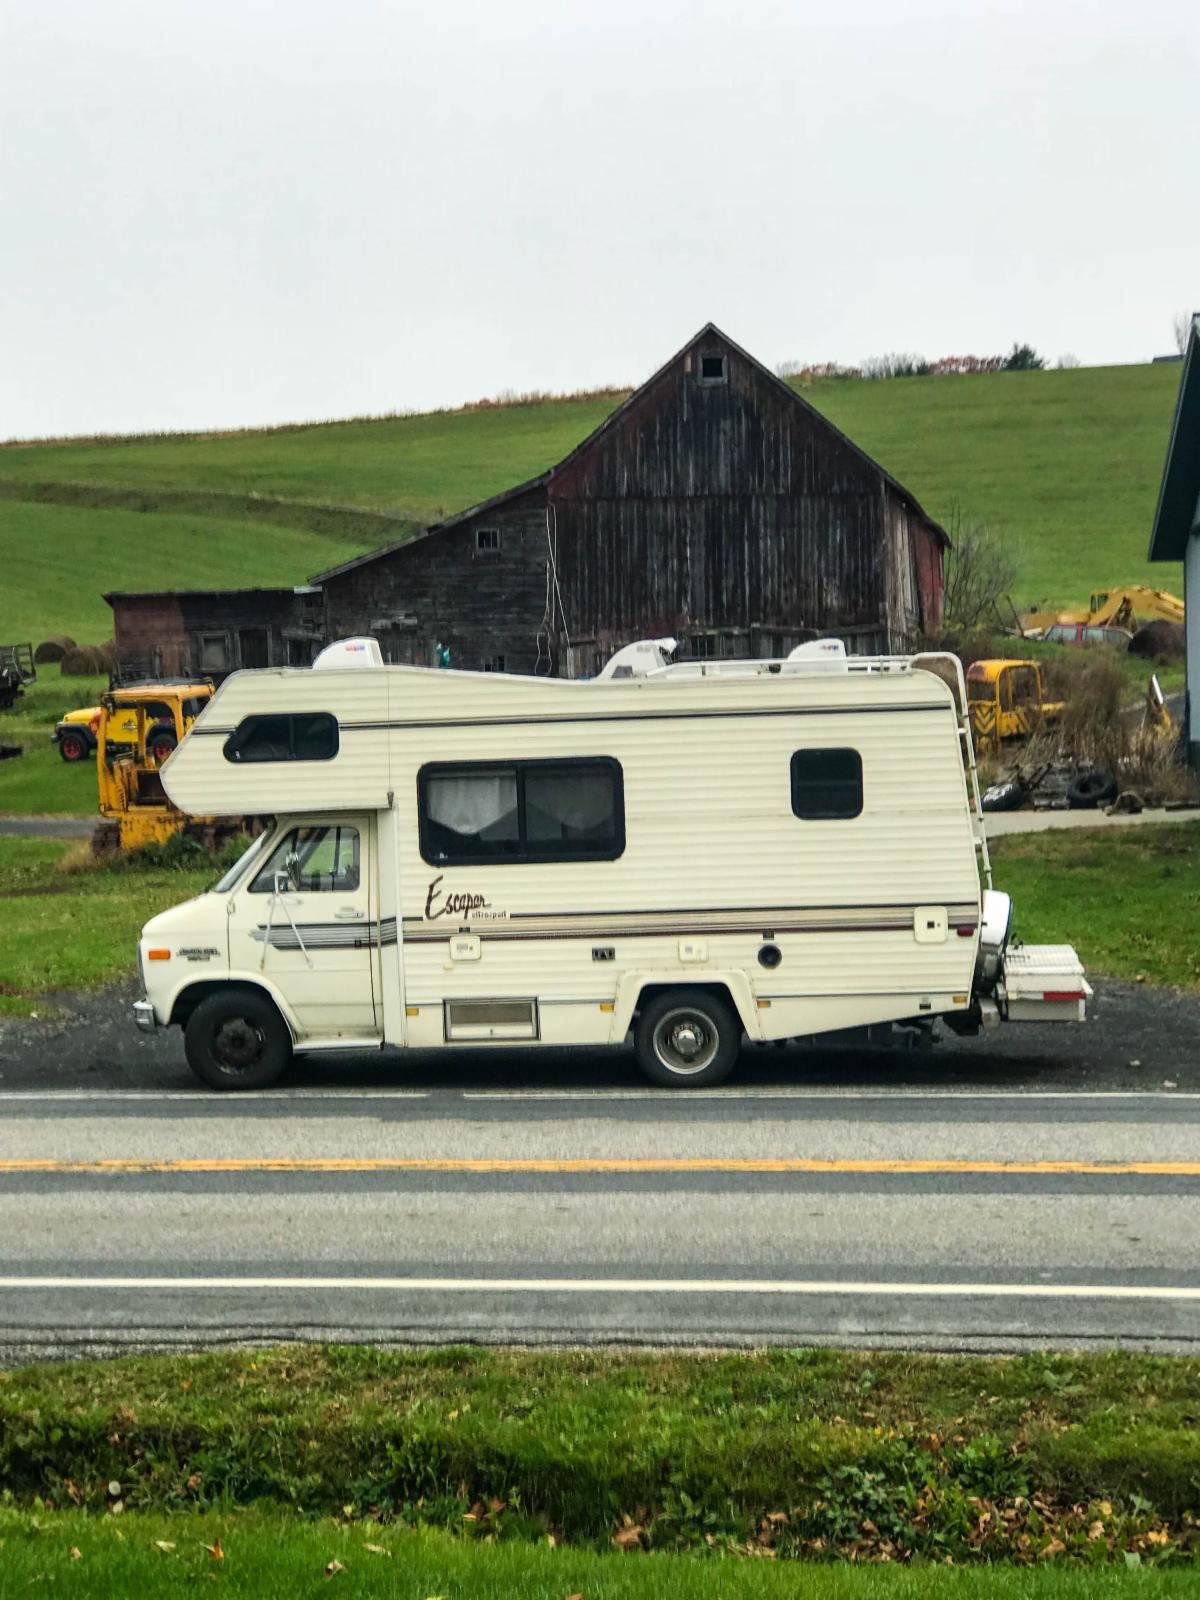 Travels in Marne's RV, Vermont